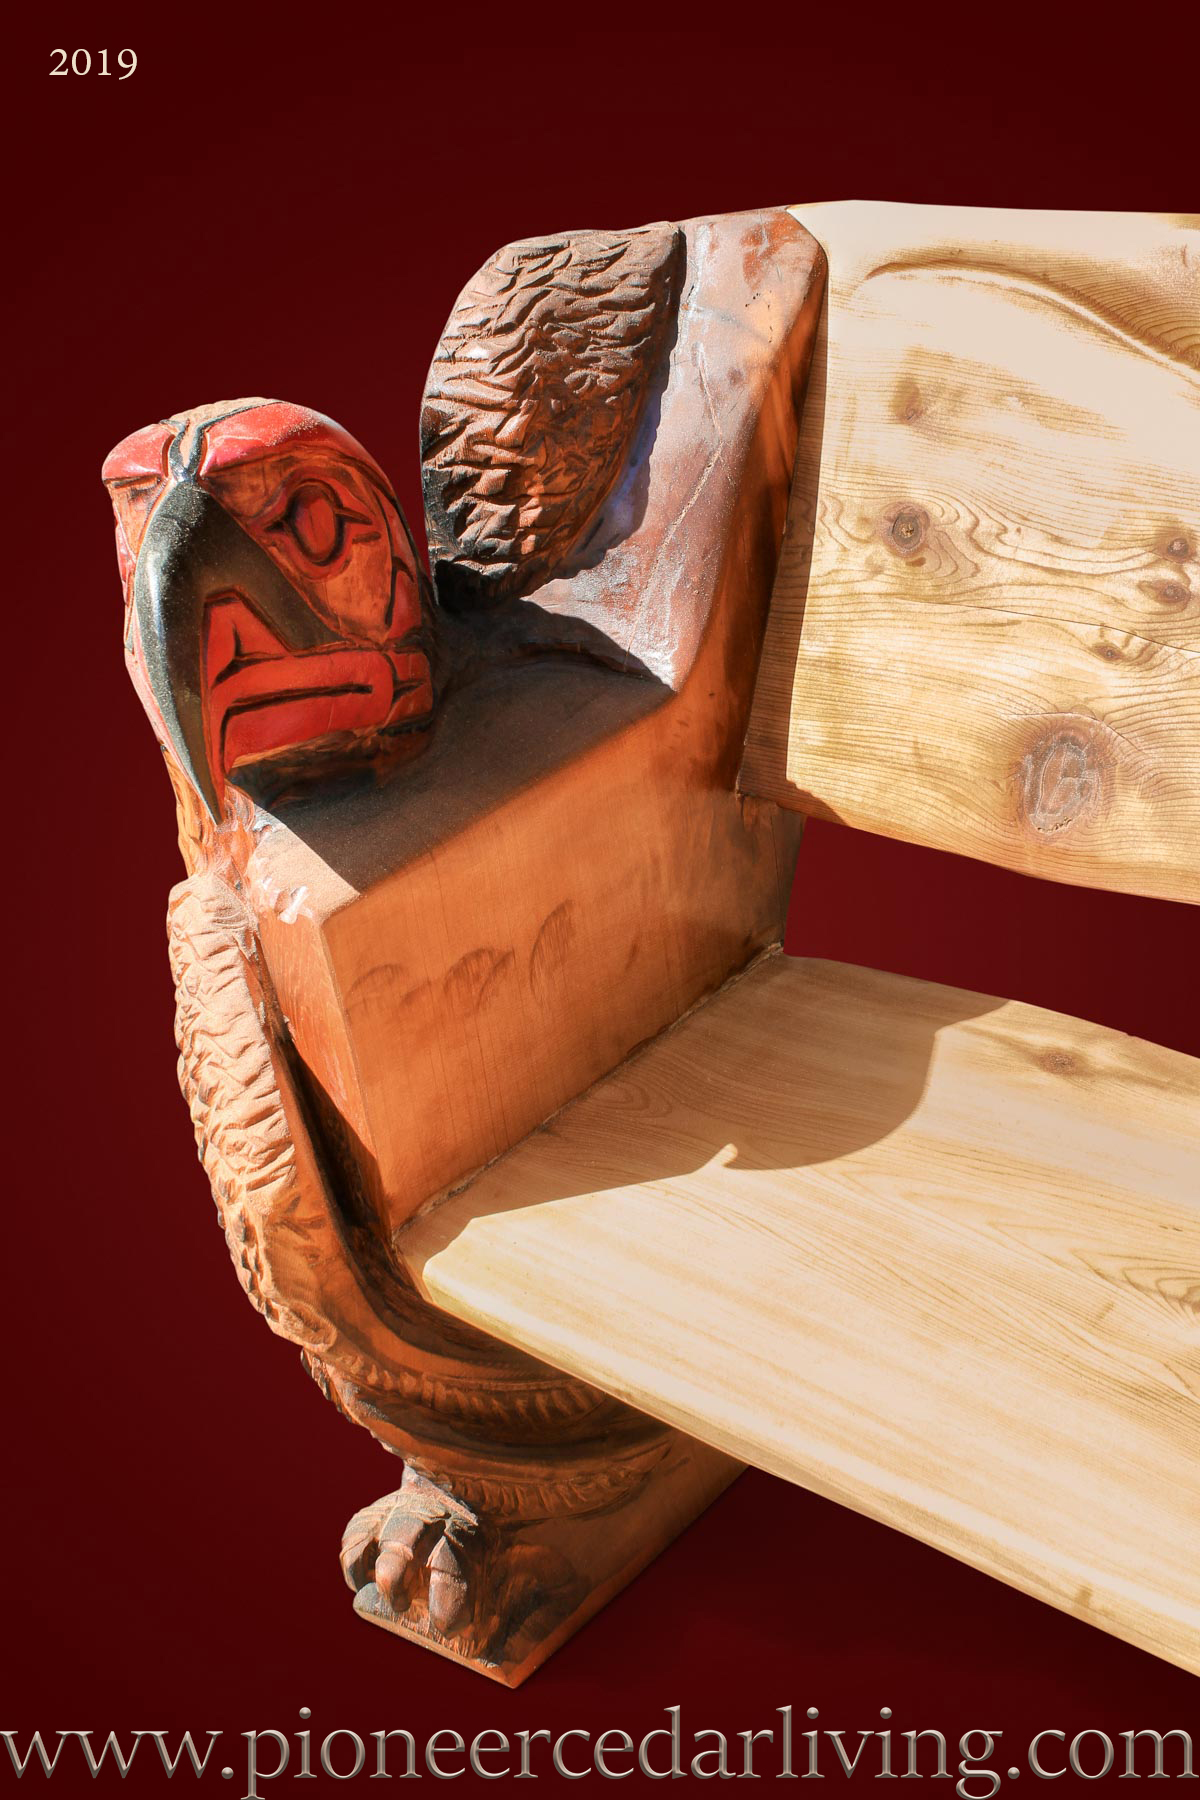 Western red cedar log bench with spirit eagle carvings